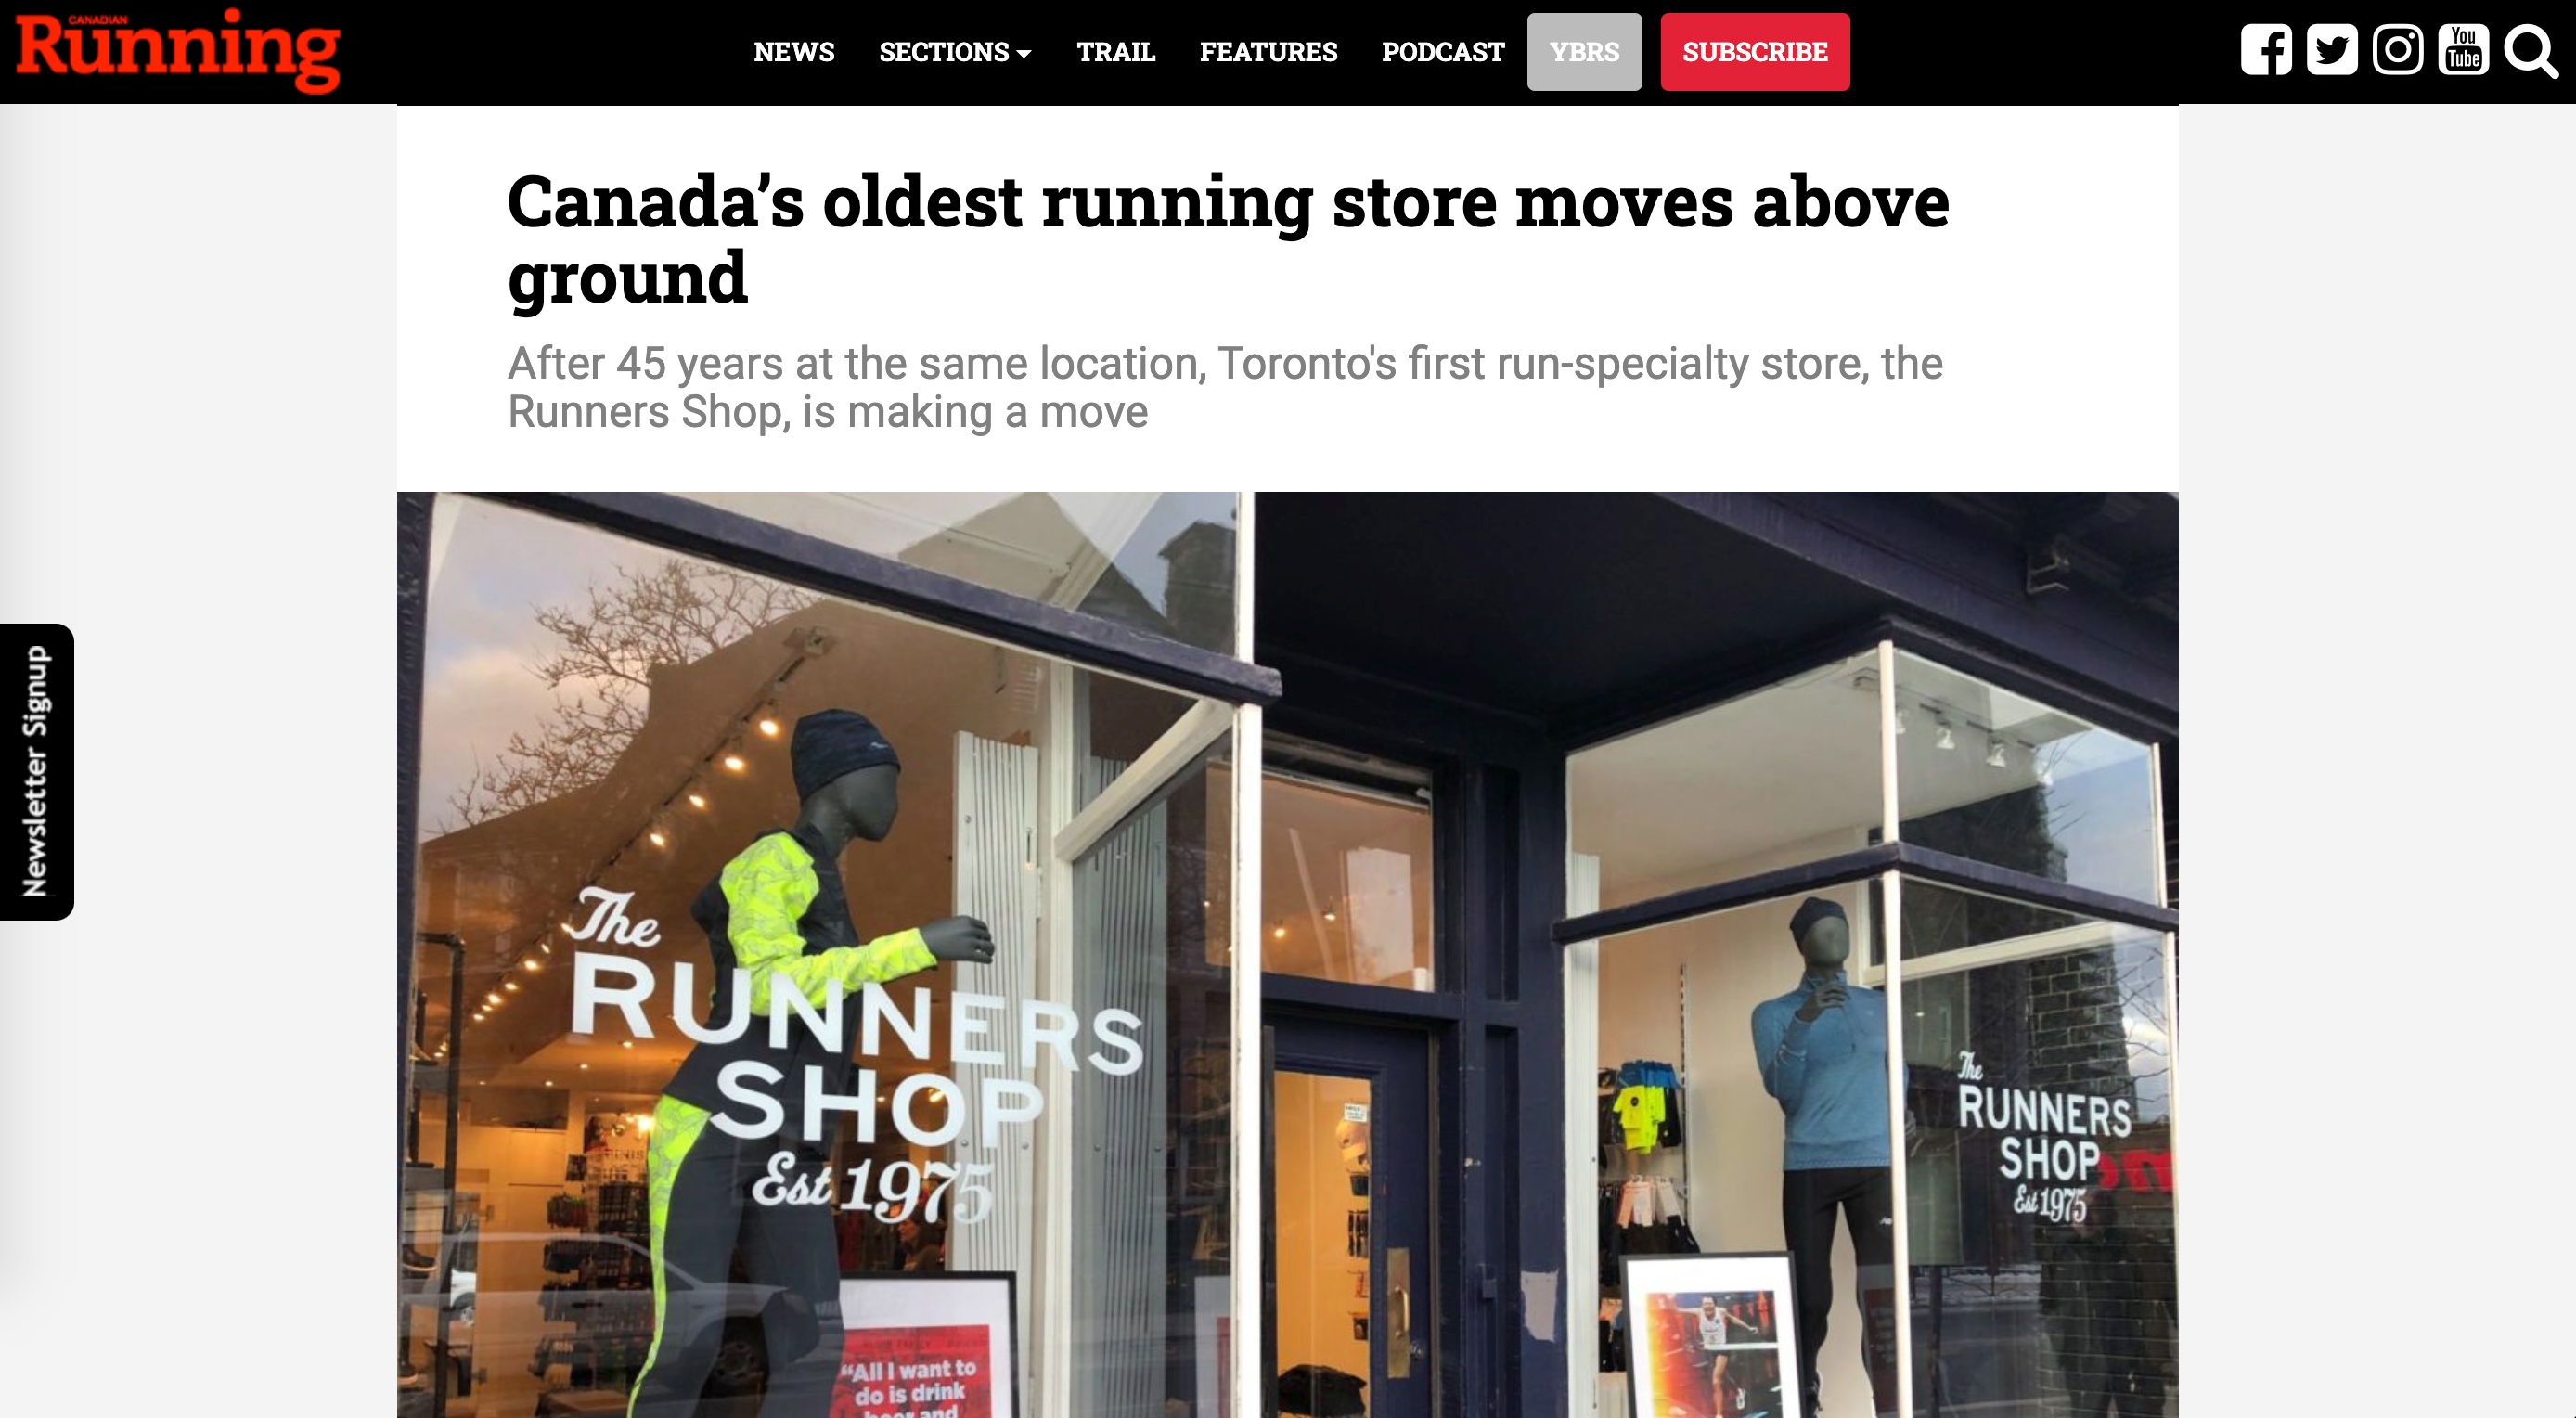 Canada's Oldest Run Specialty Store Moves Above Ground: Article Featured in Canadian Running